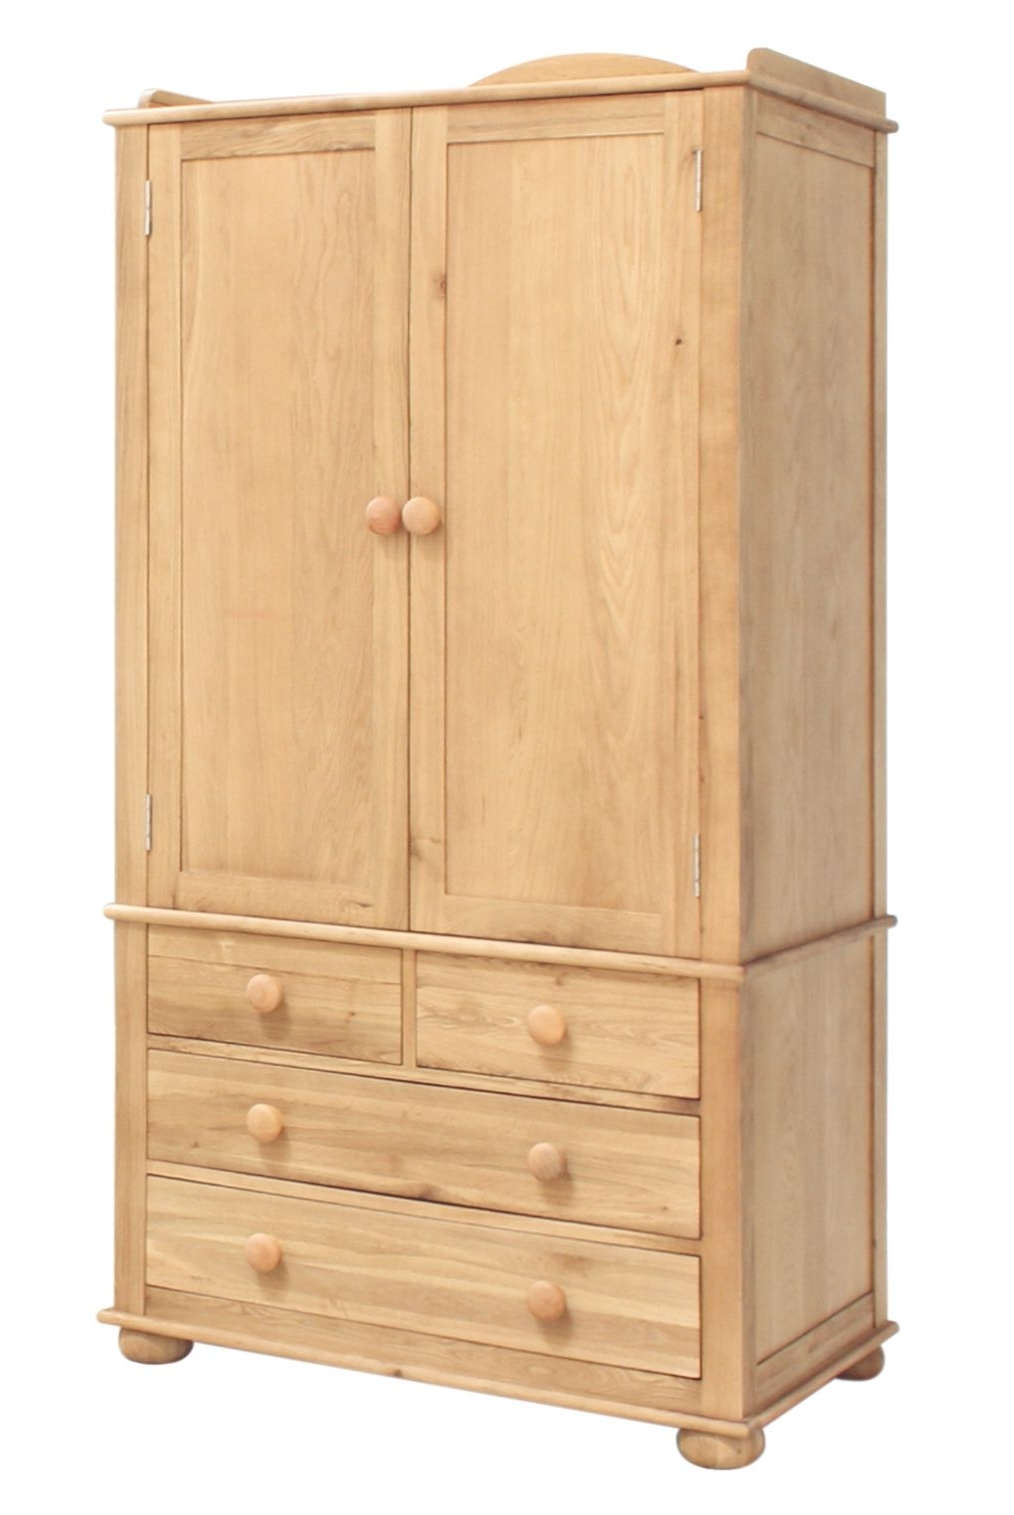 Amelie Oak Childrens Double Wardrobe Intended For Well Known Double Rail Oak Wardrobes (View 1 of 15)